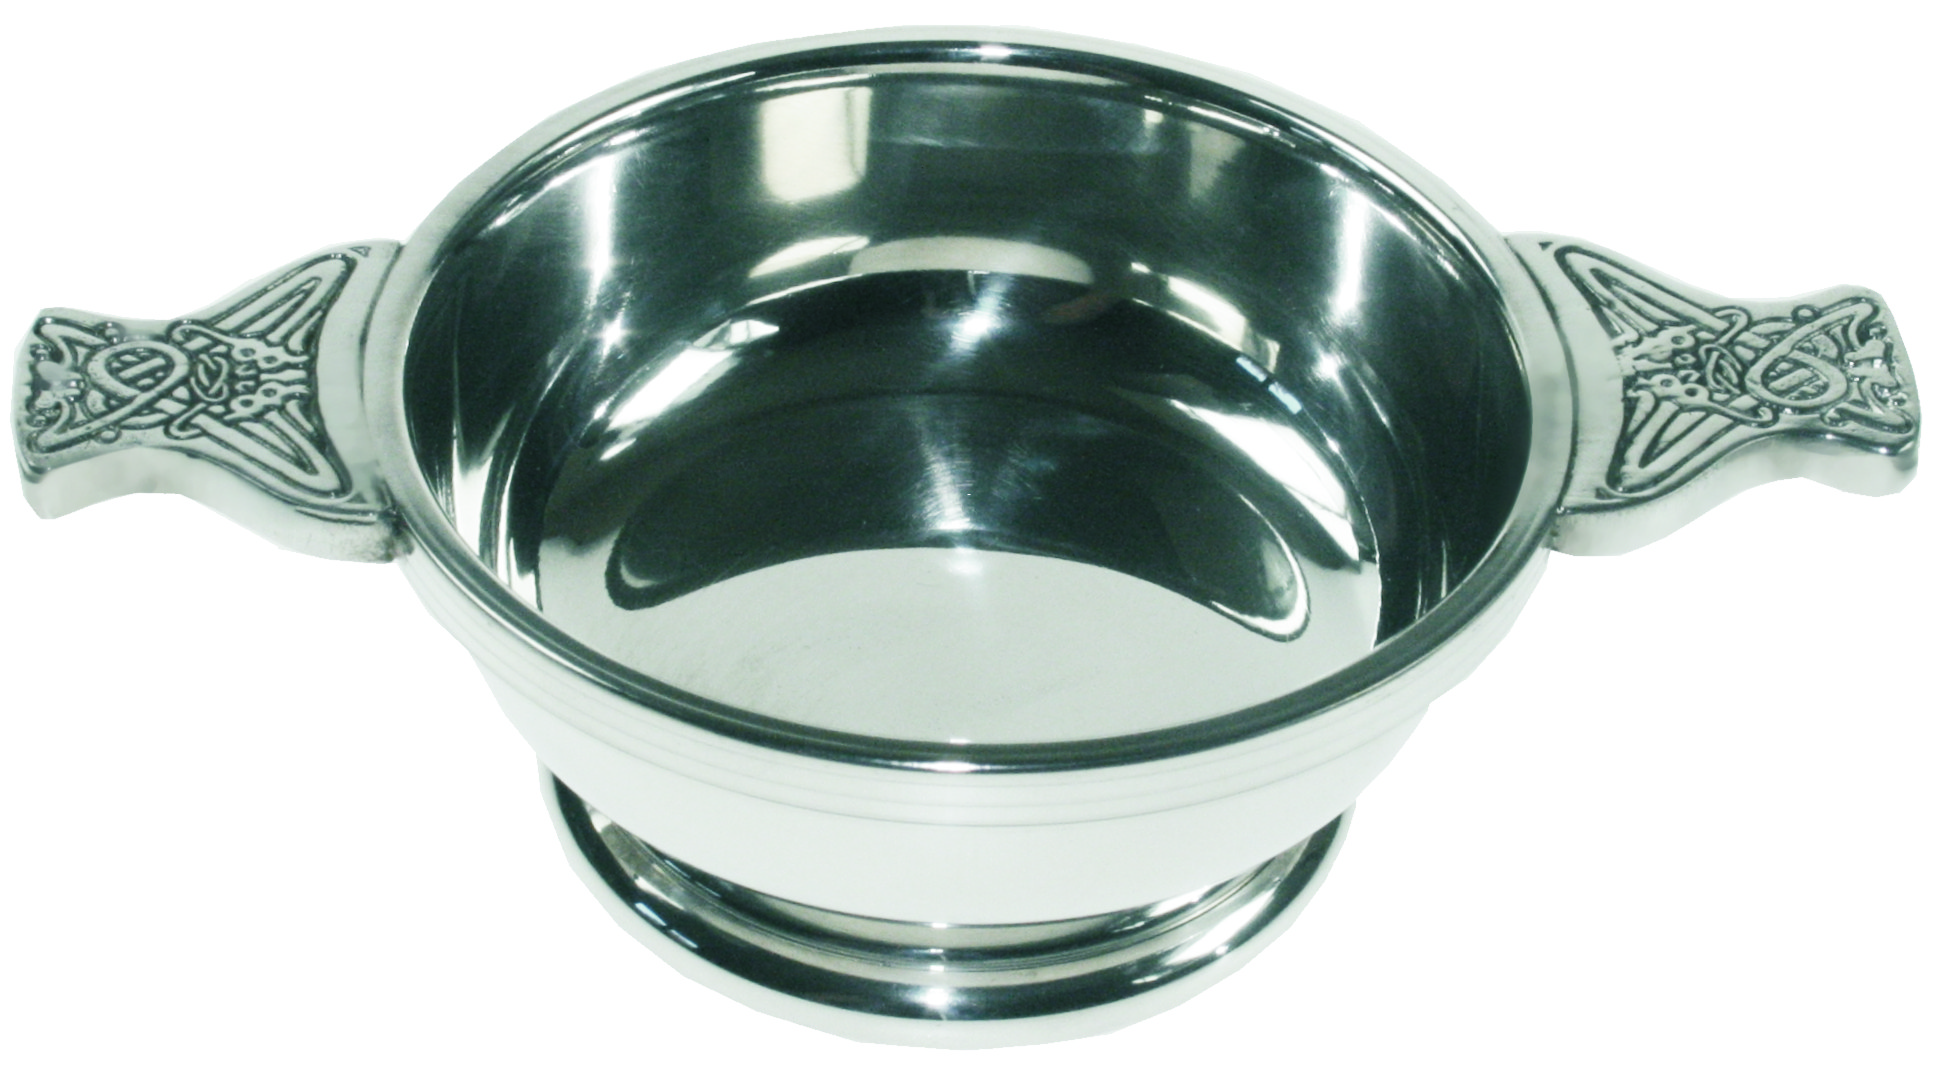 "Pewter Quaich Bowl with Celtic Patterned Handle 10cm (4"")"